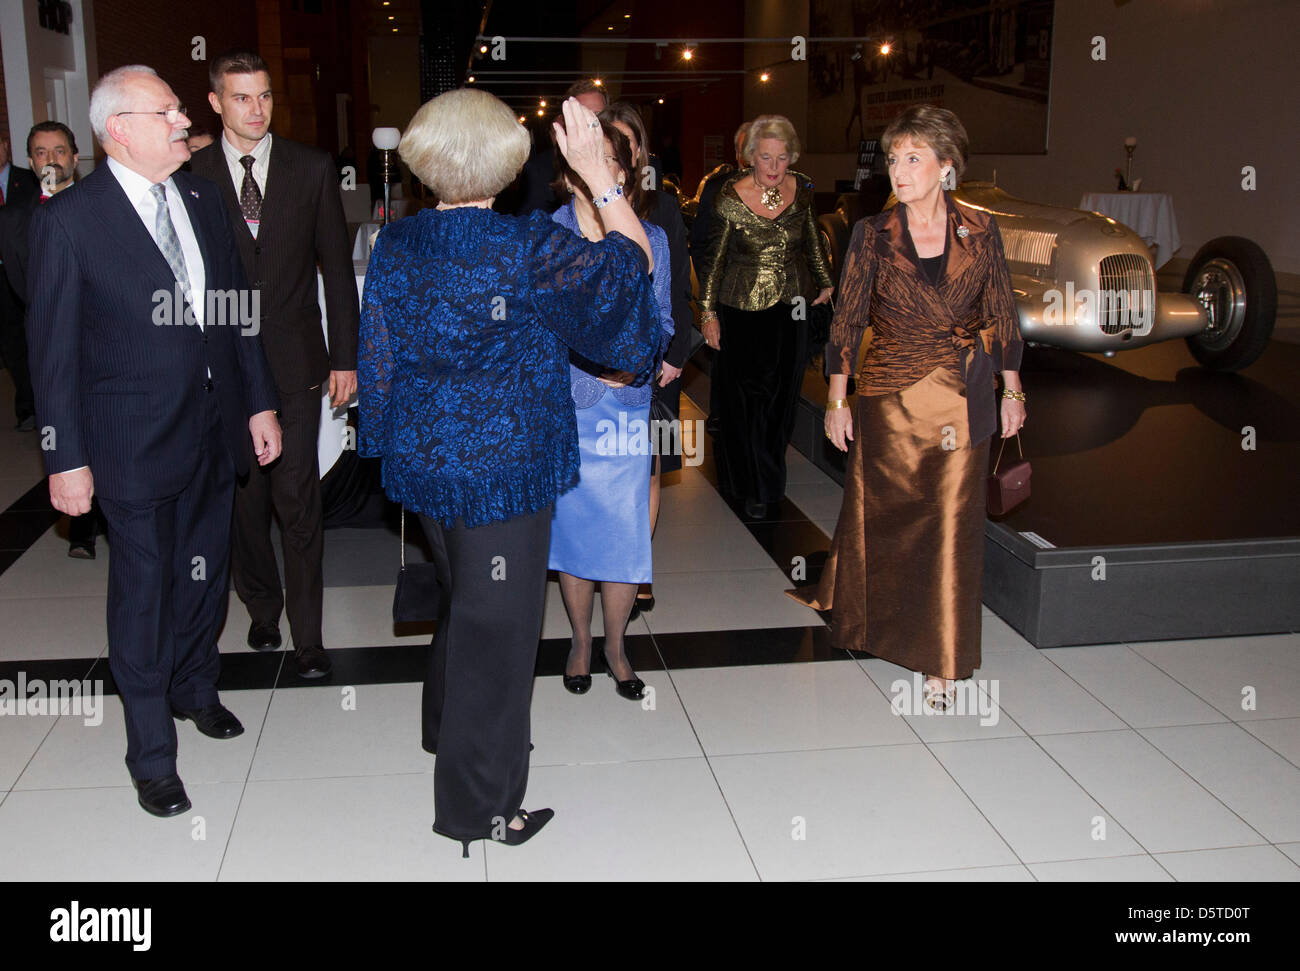 Queen Beatrix of The Netherlands (C) and Princess Margriet (R) attend a concert offered by President Gasparovic Stock Photo